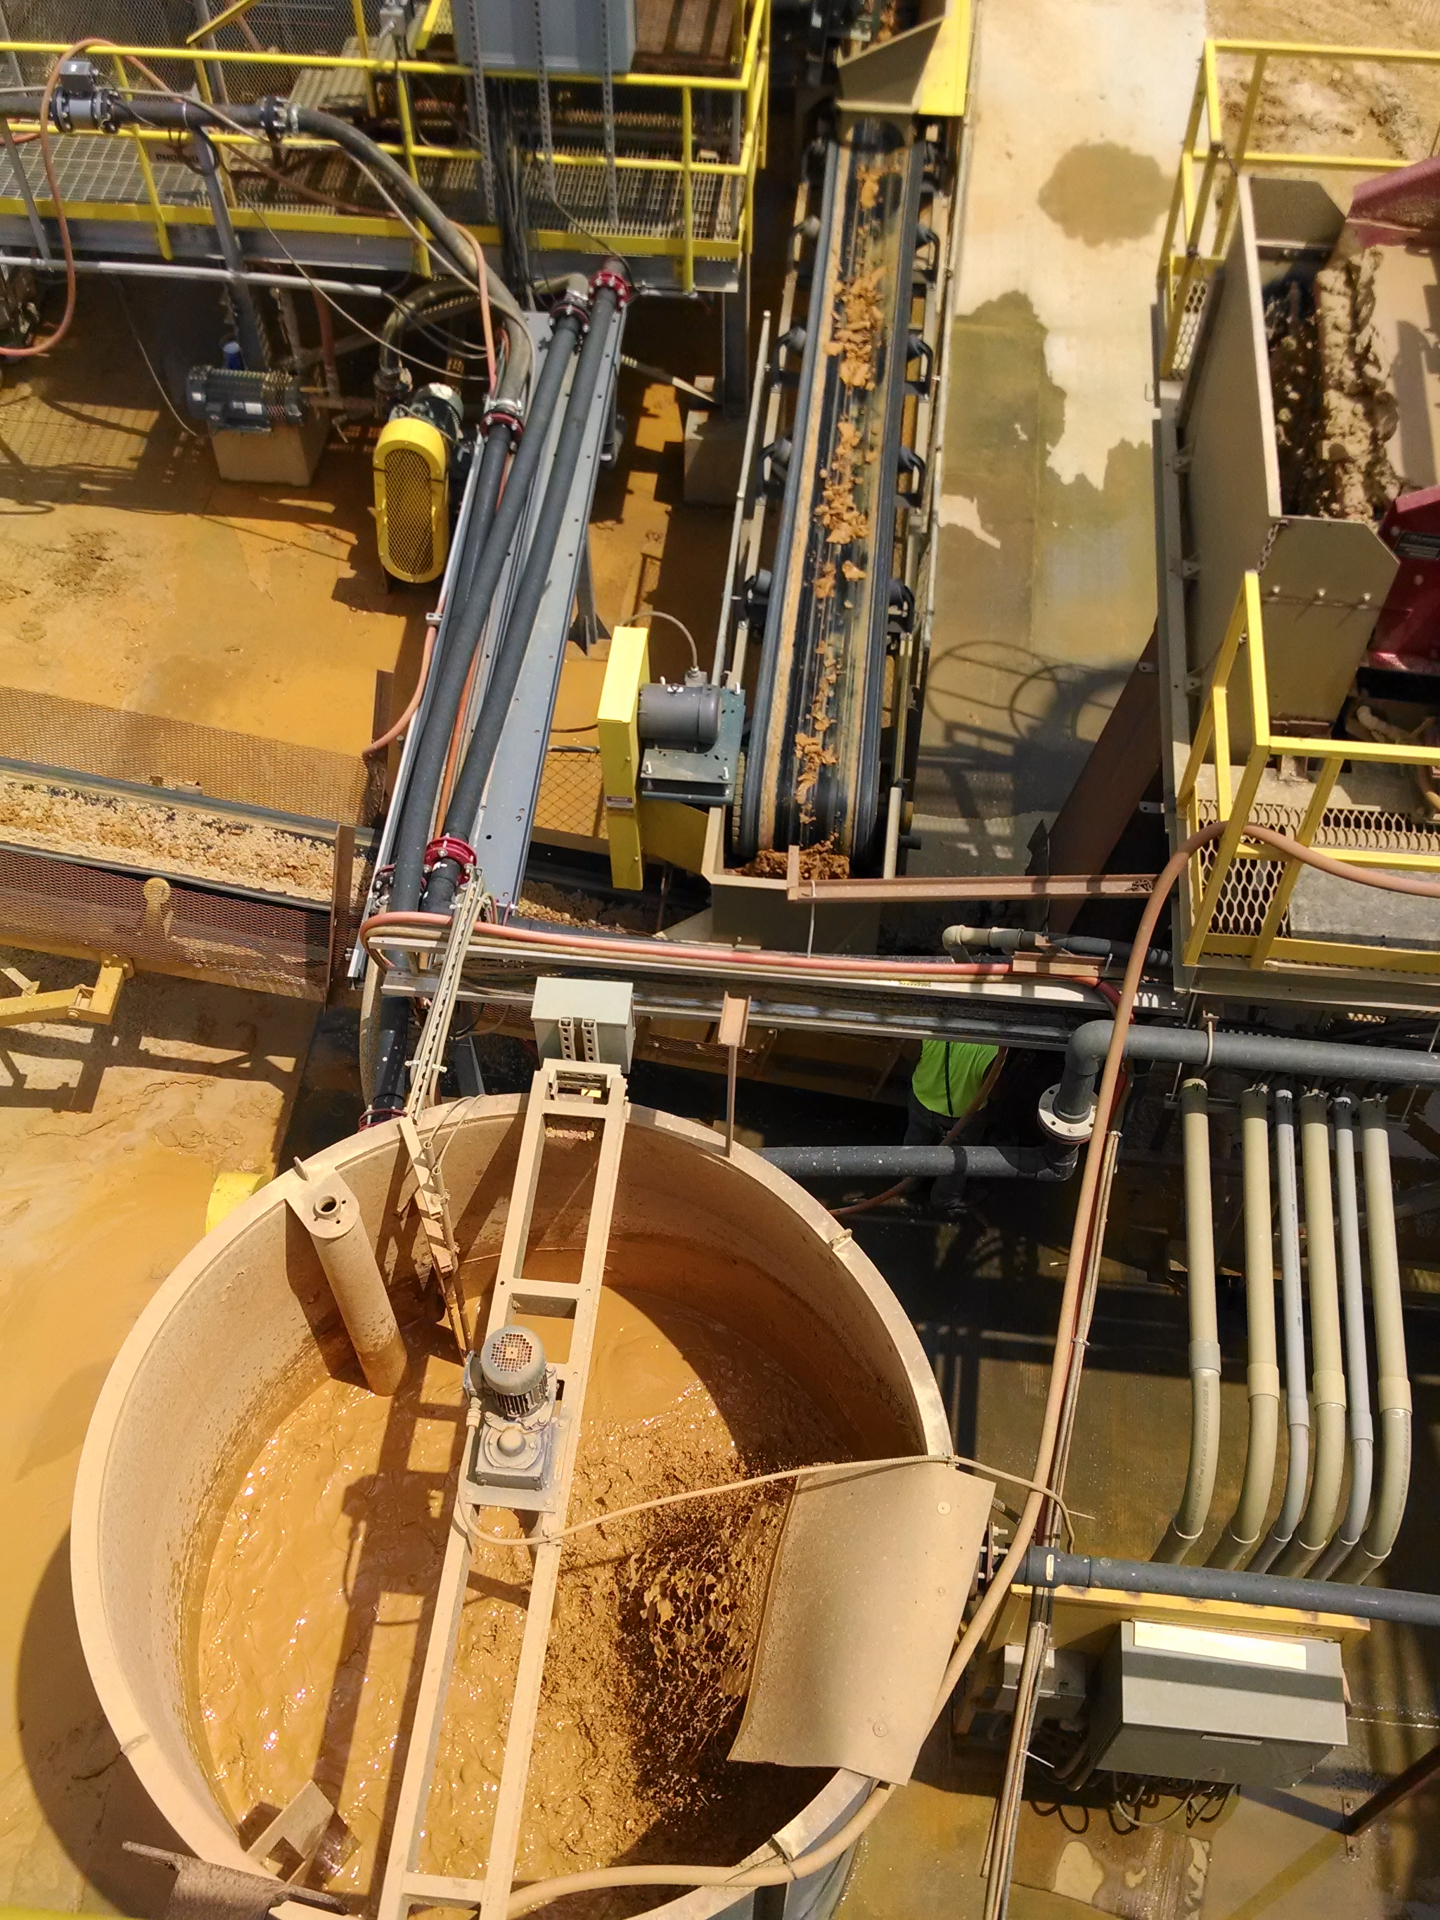 An above view of a section of a sand washing plant with conveyor belts taking aggregates to different locations.